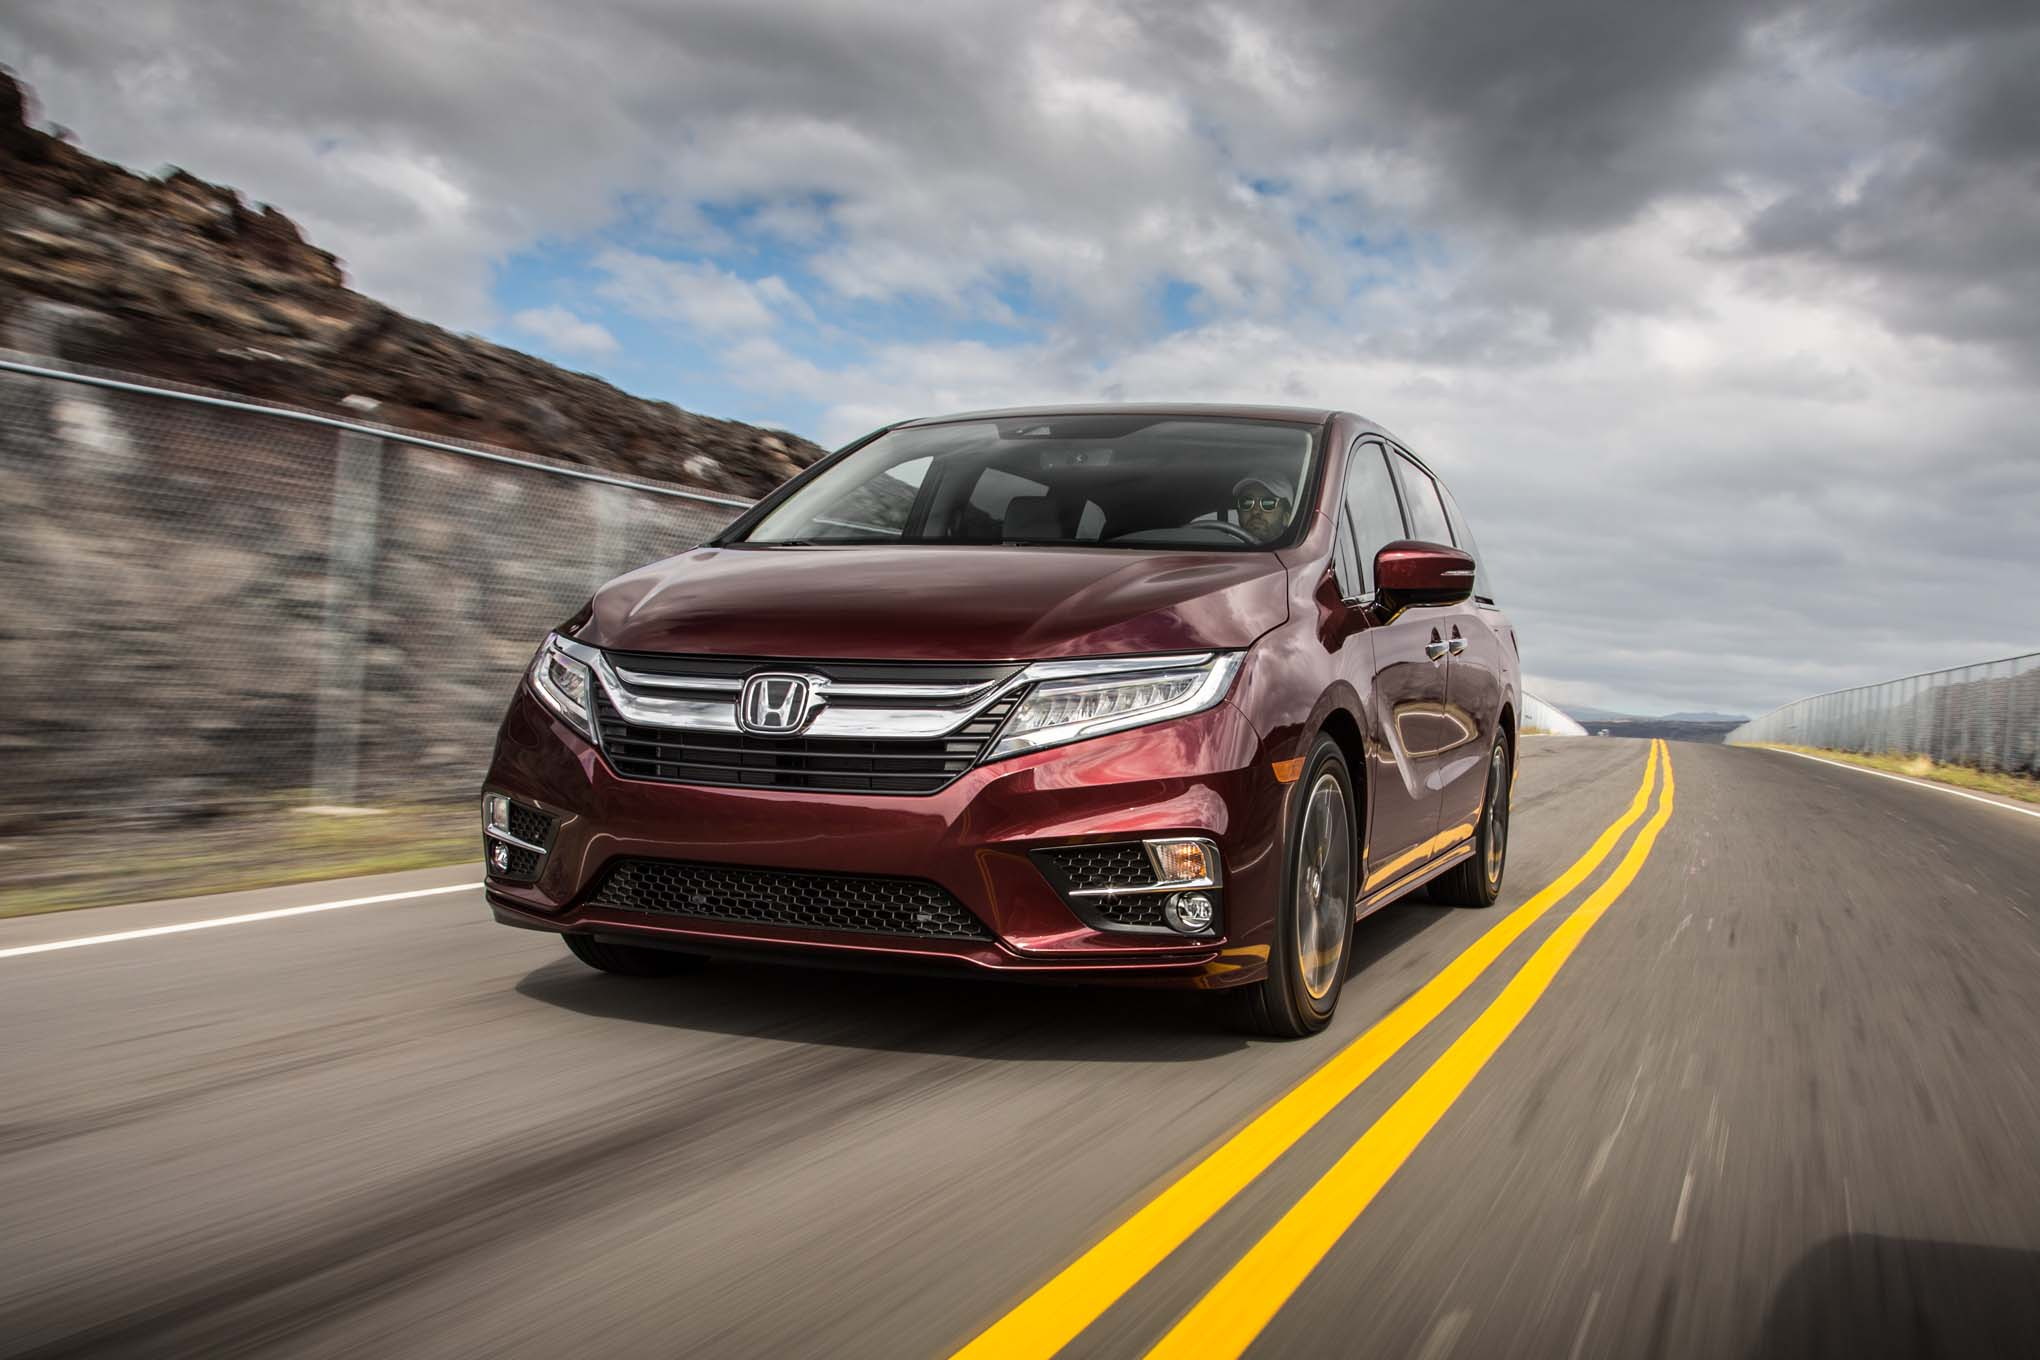 2018 Honda Odyssey Front Three Quarter In Motion 03 1